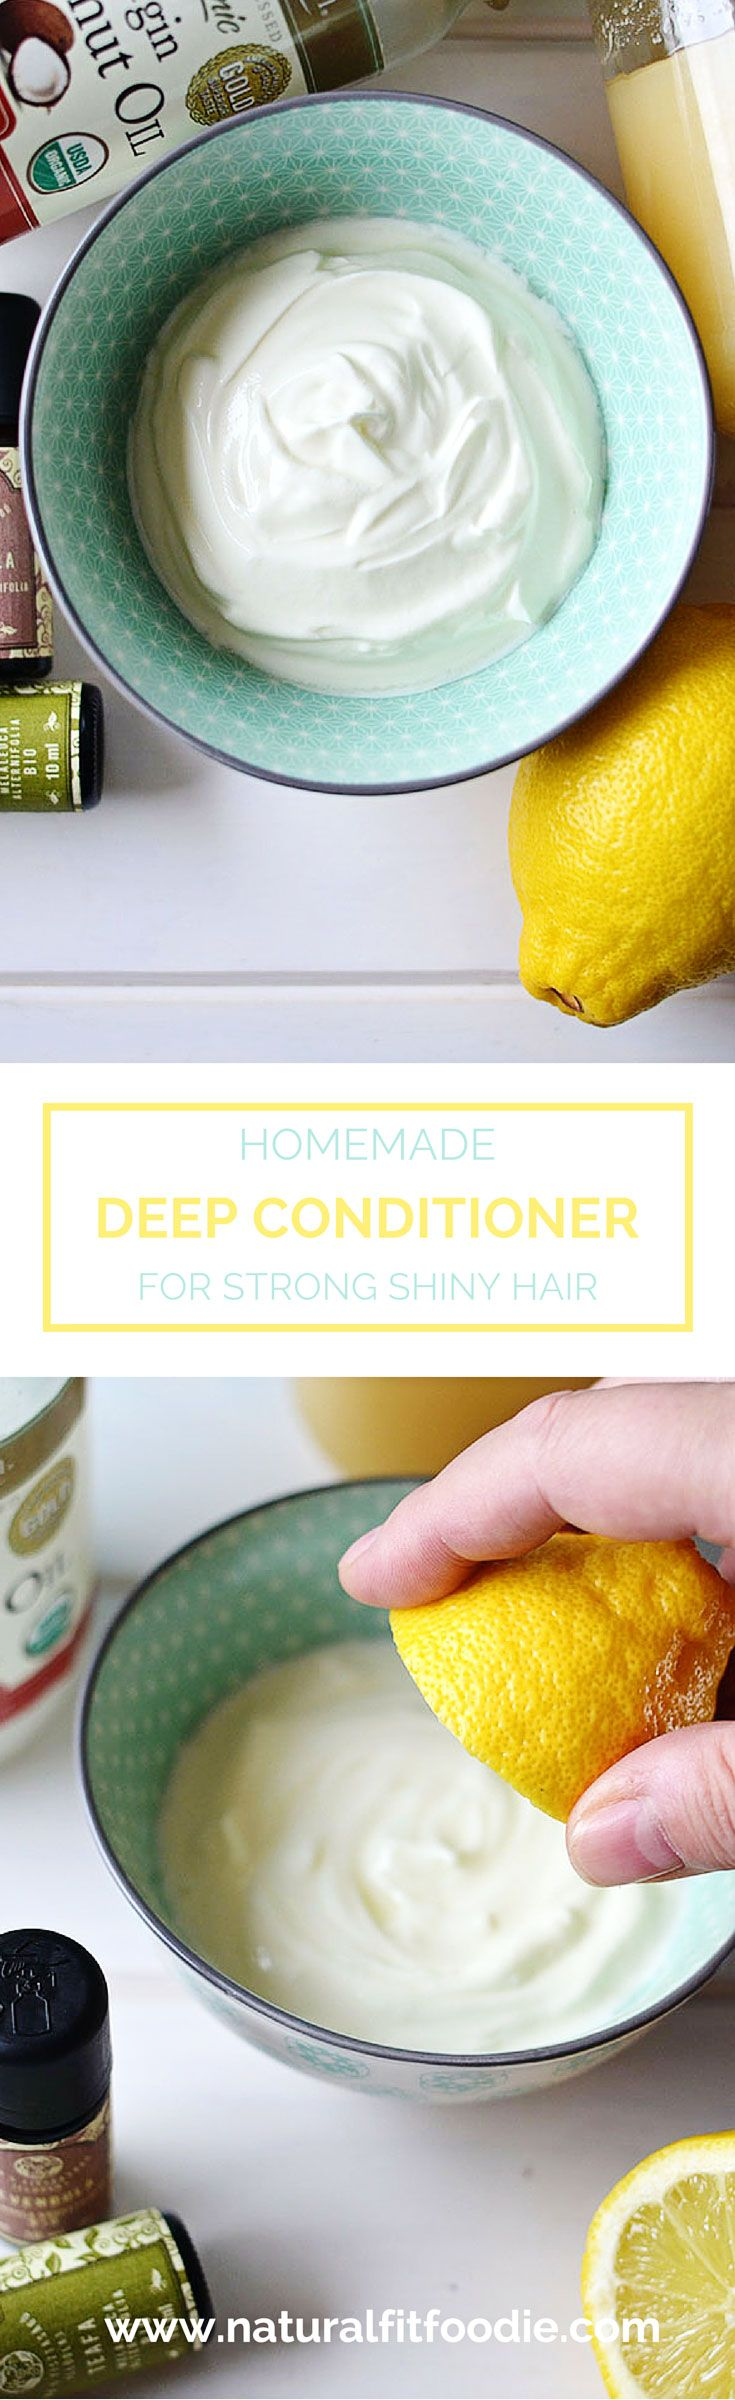 This Homemade Deep Conditioner is full of nourishing ingredients to revive your hair and improve its condition. Achieve healthier locks with every use!